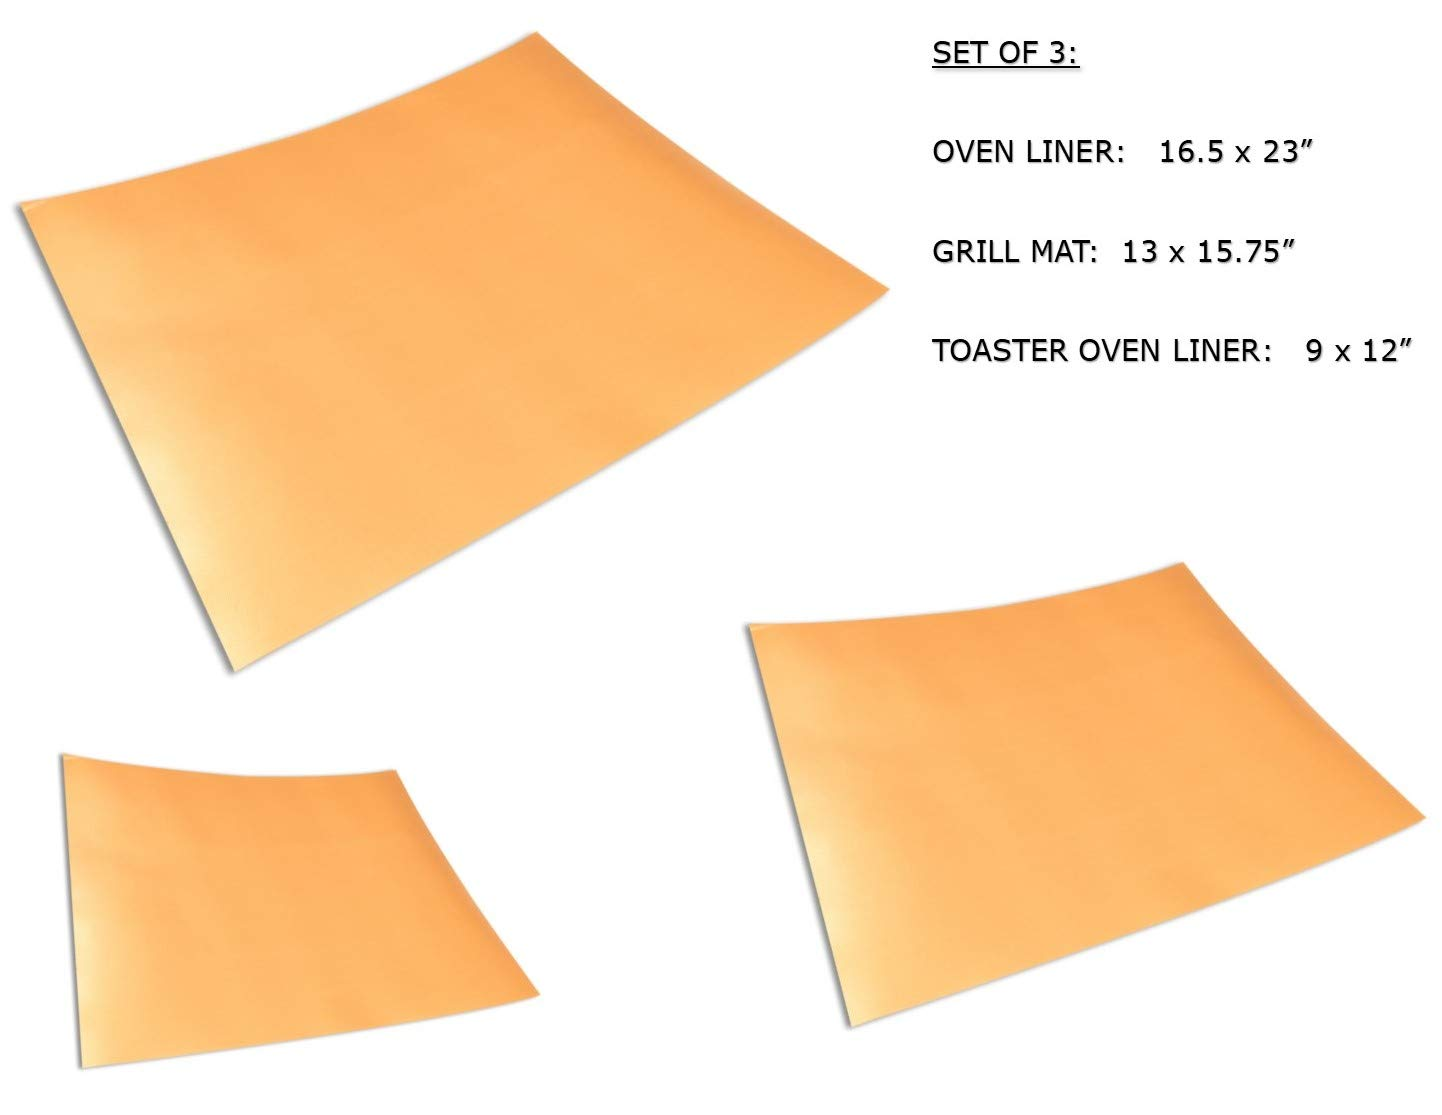 Cooks Innovations Copper Grill & Bake Mats (3 sizes) - Use on the grill, in oven & toaster oven. 100% Non-Stick.